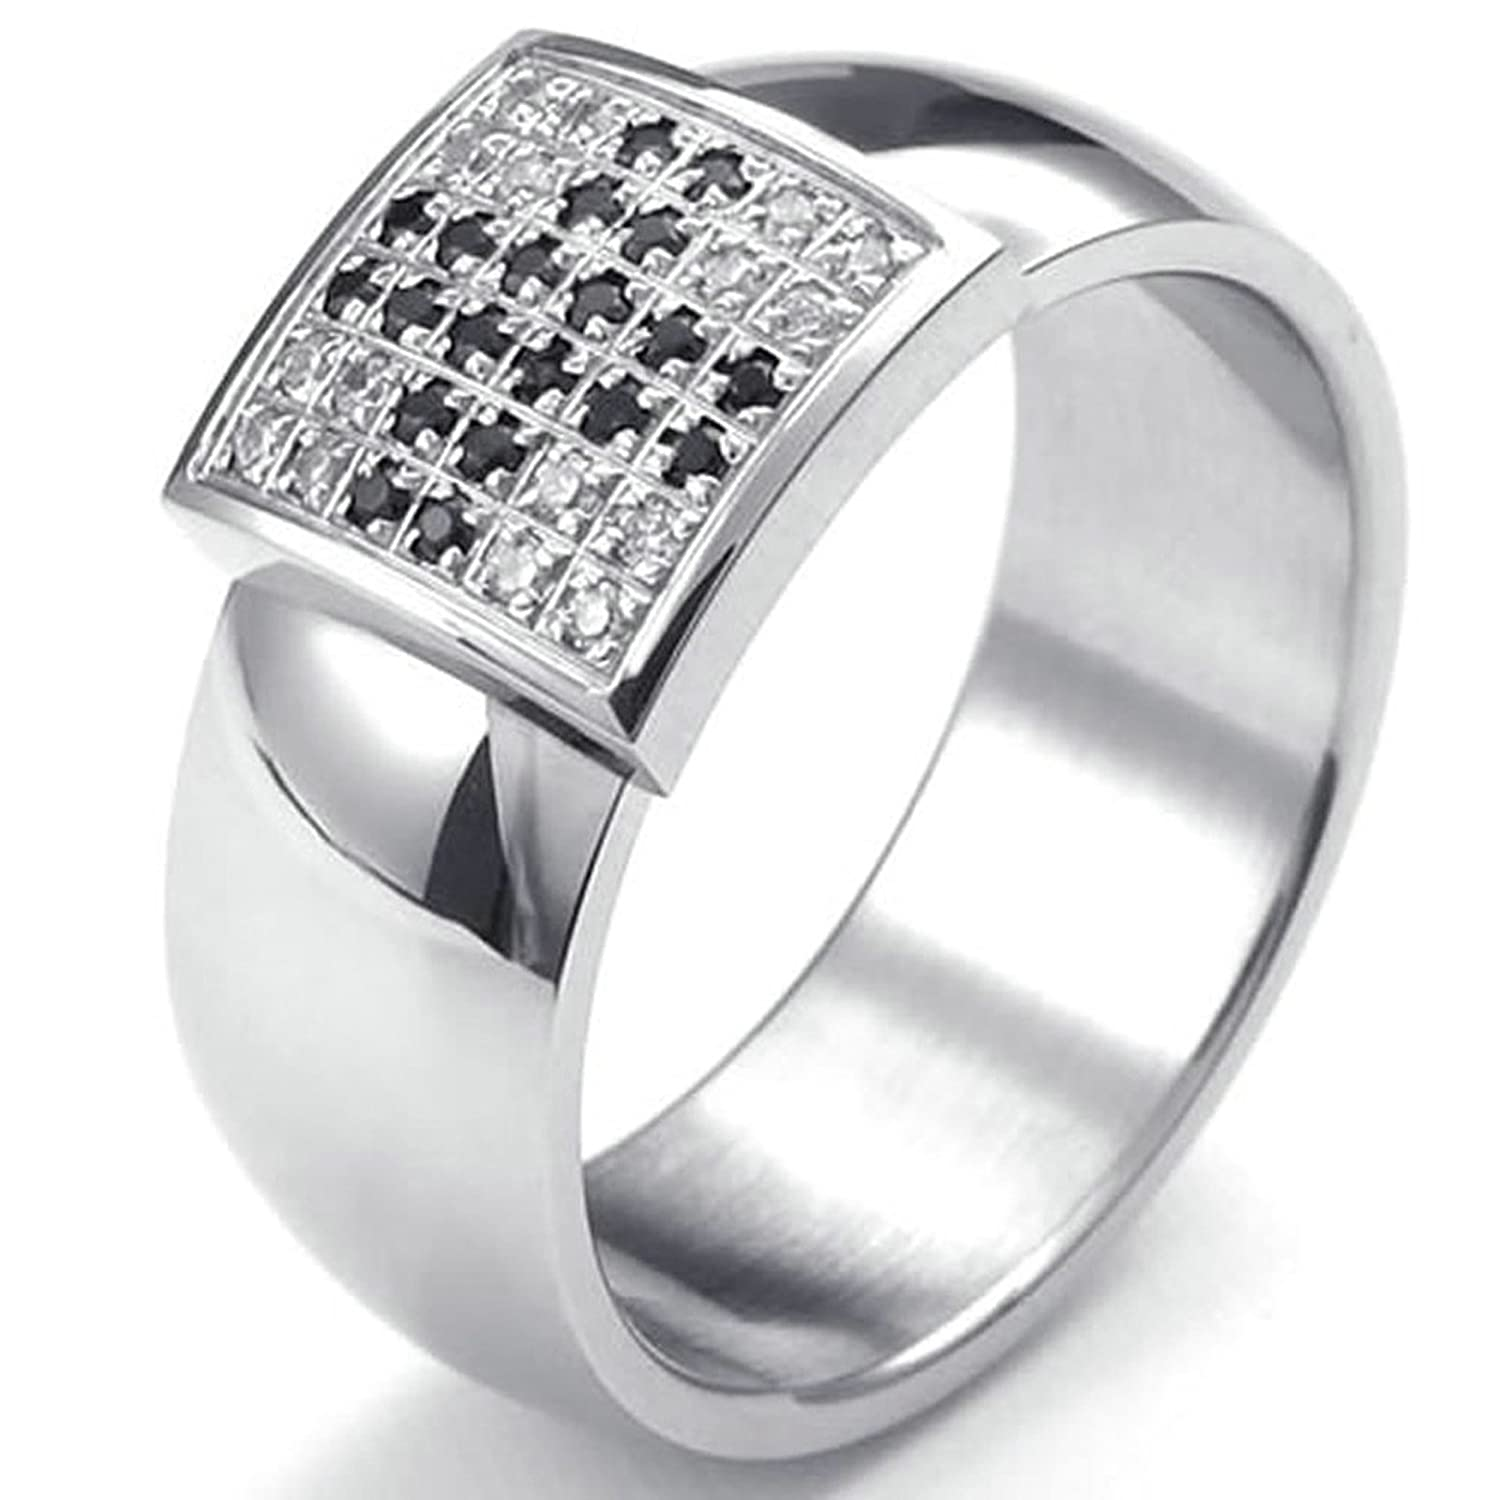 Aooaz Free Engraving Ring 4mm Stainless Steel Ring Gold Plated High Polished Wedding Band